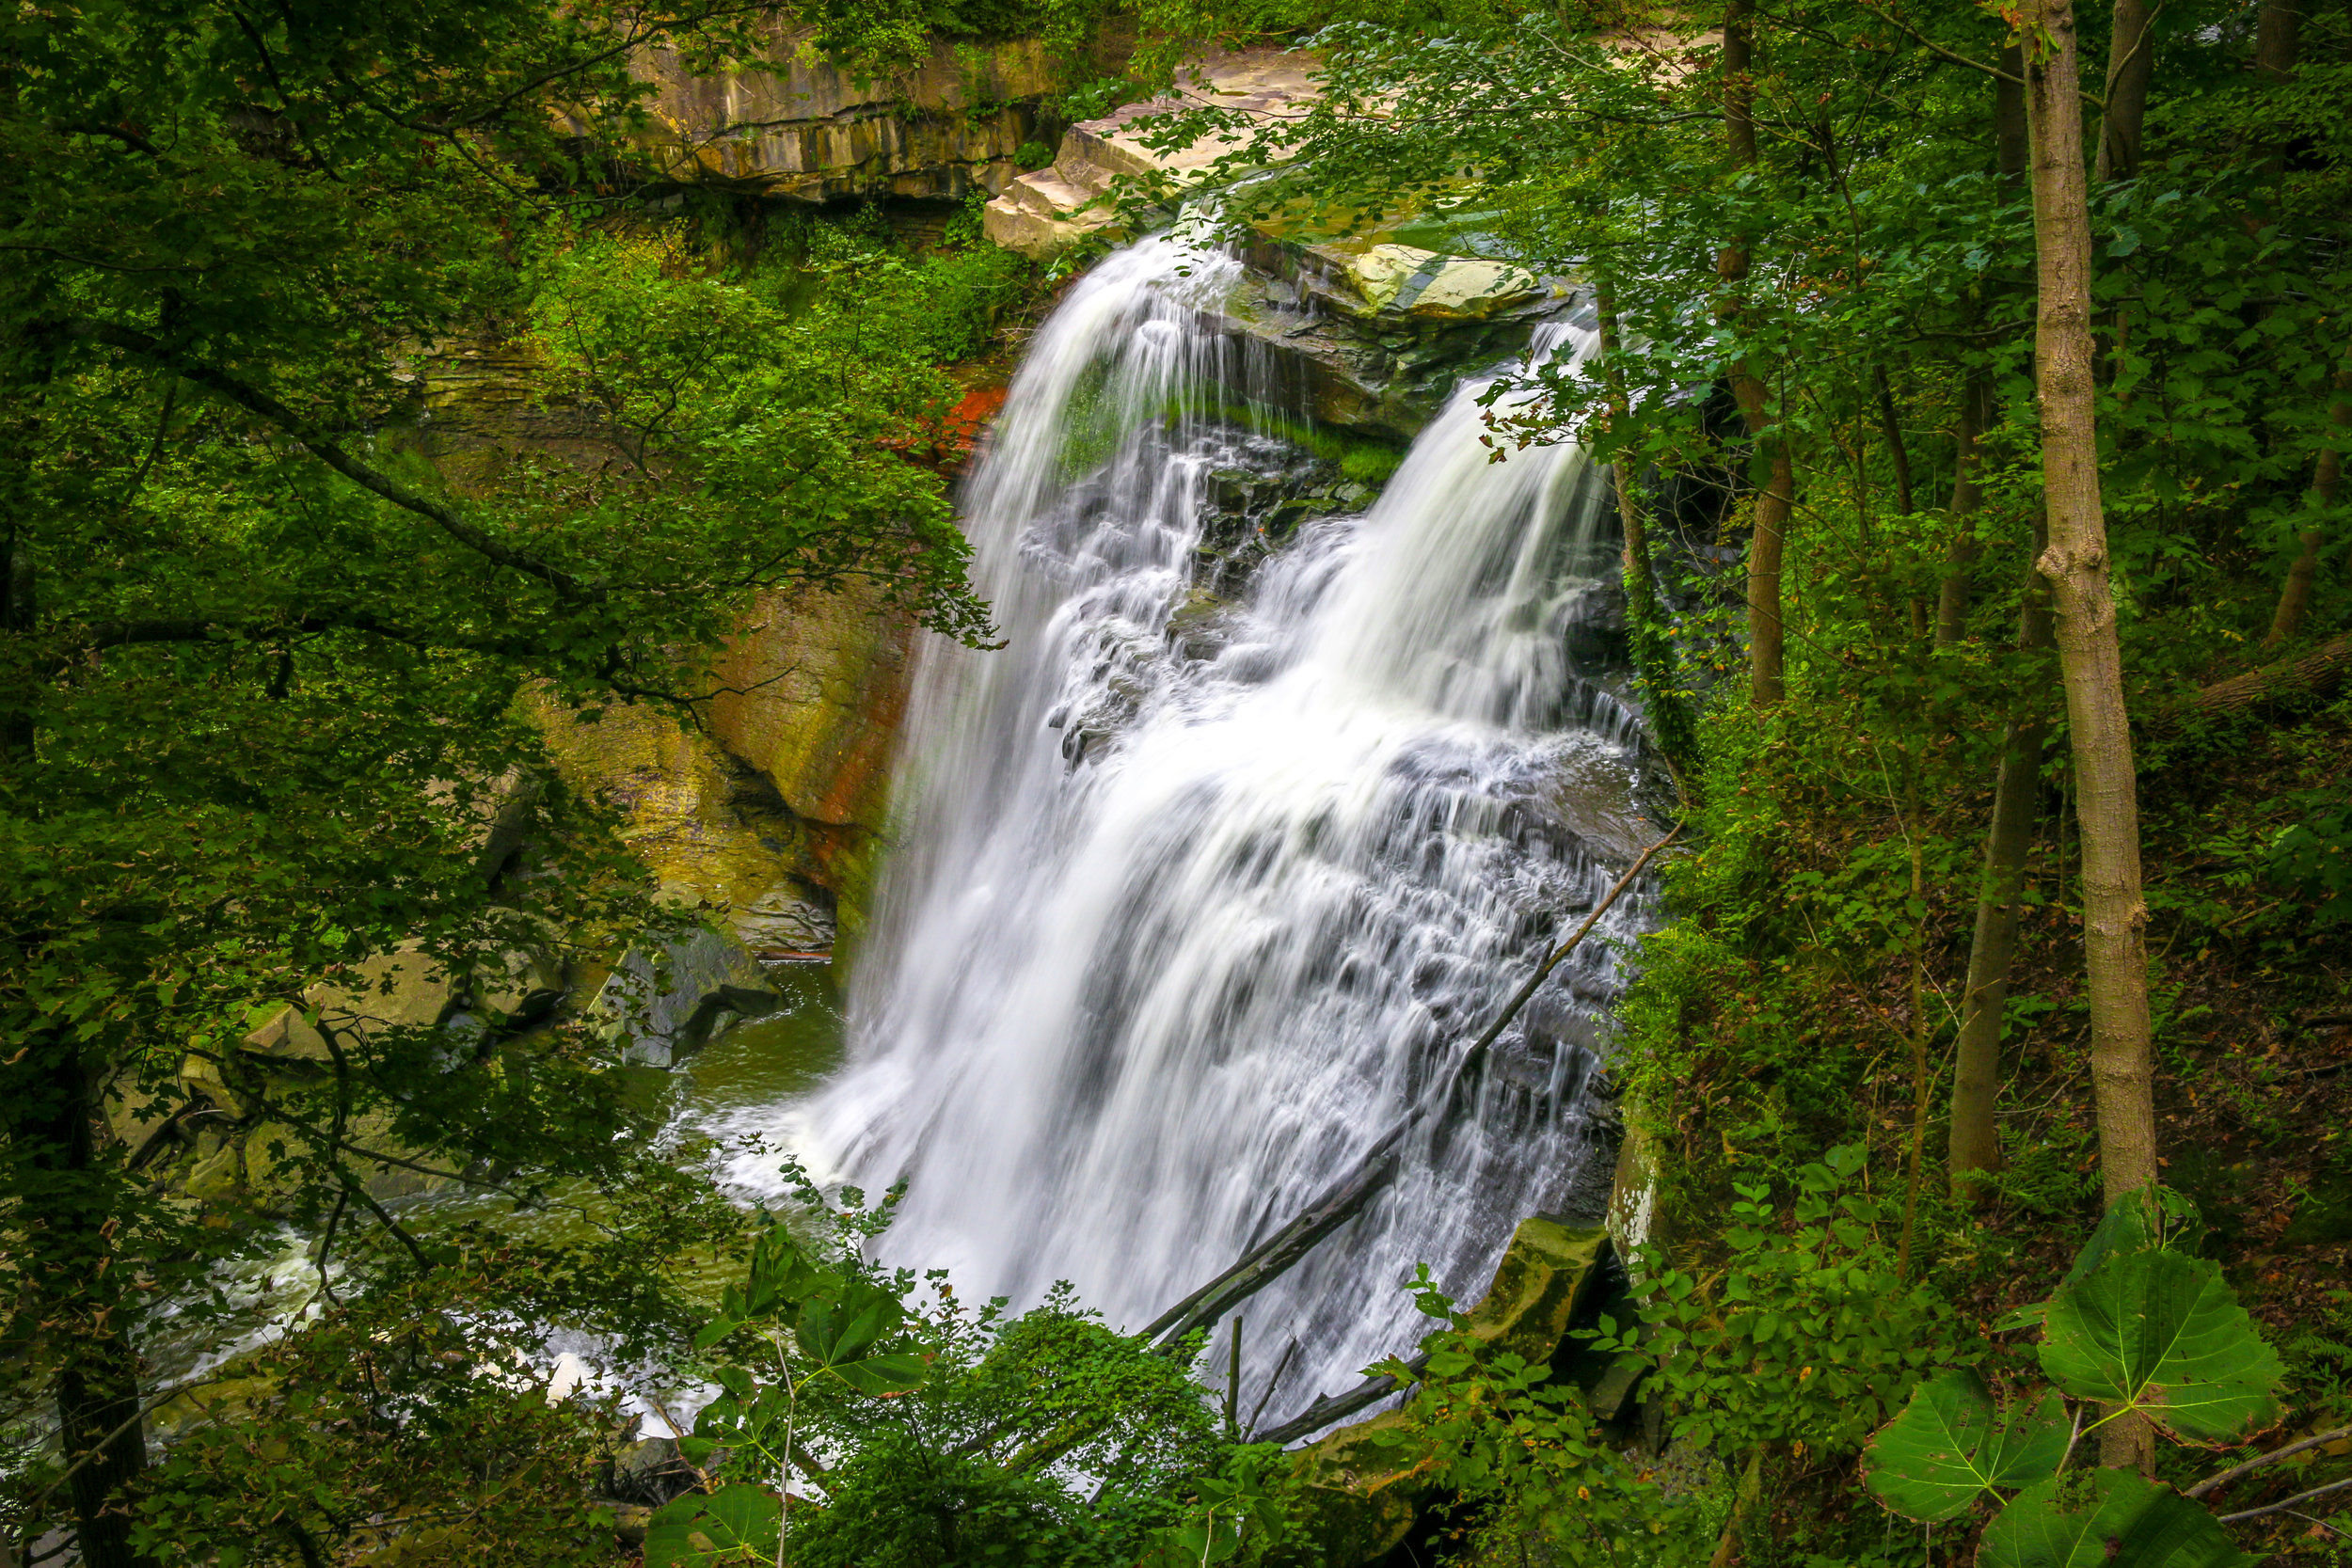 cuyahoga valley national park ohio oh nps bandywine falls waterfall